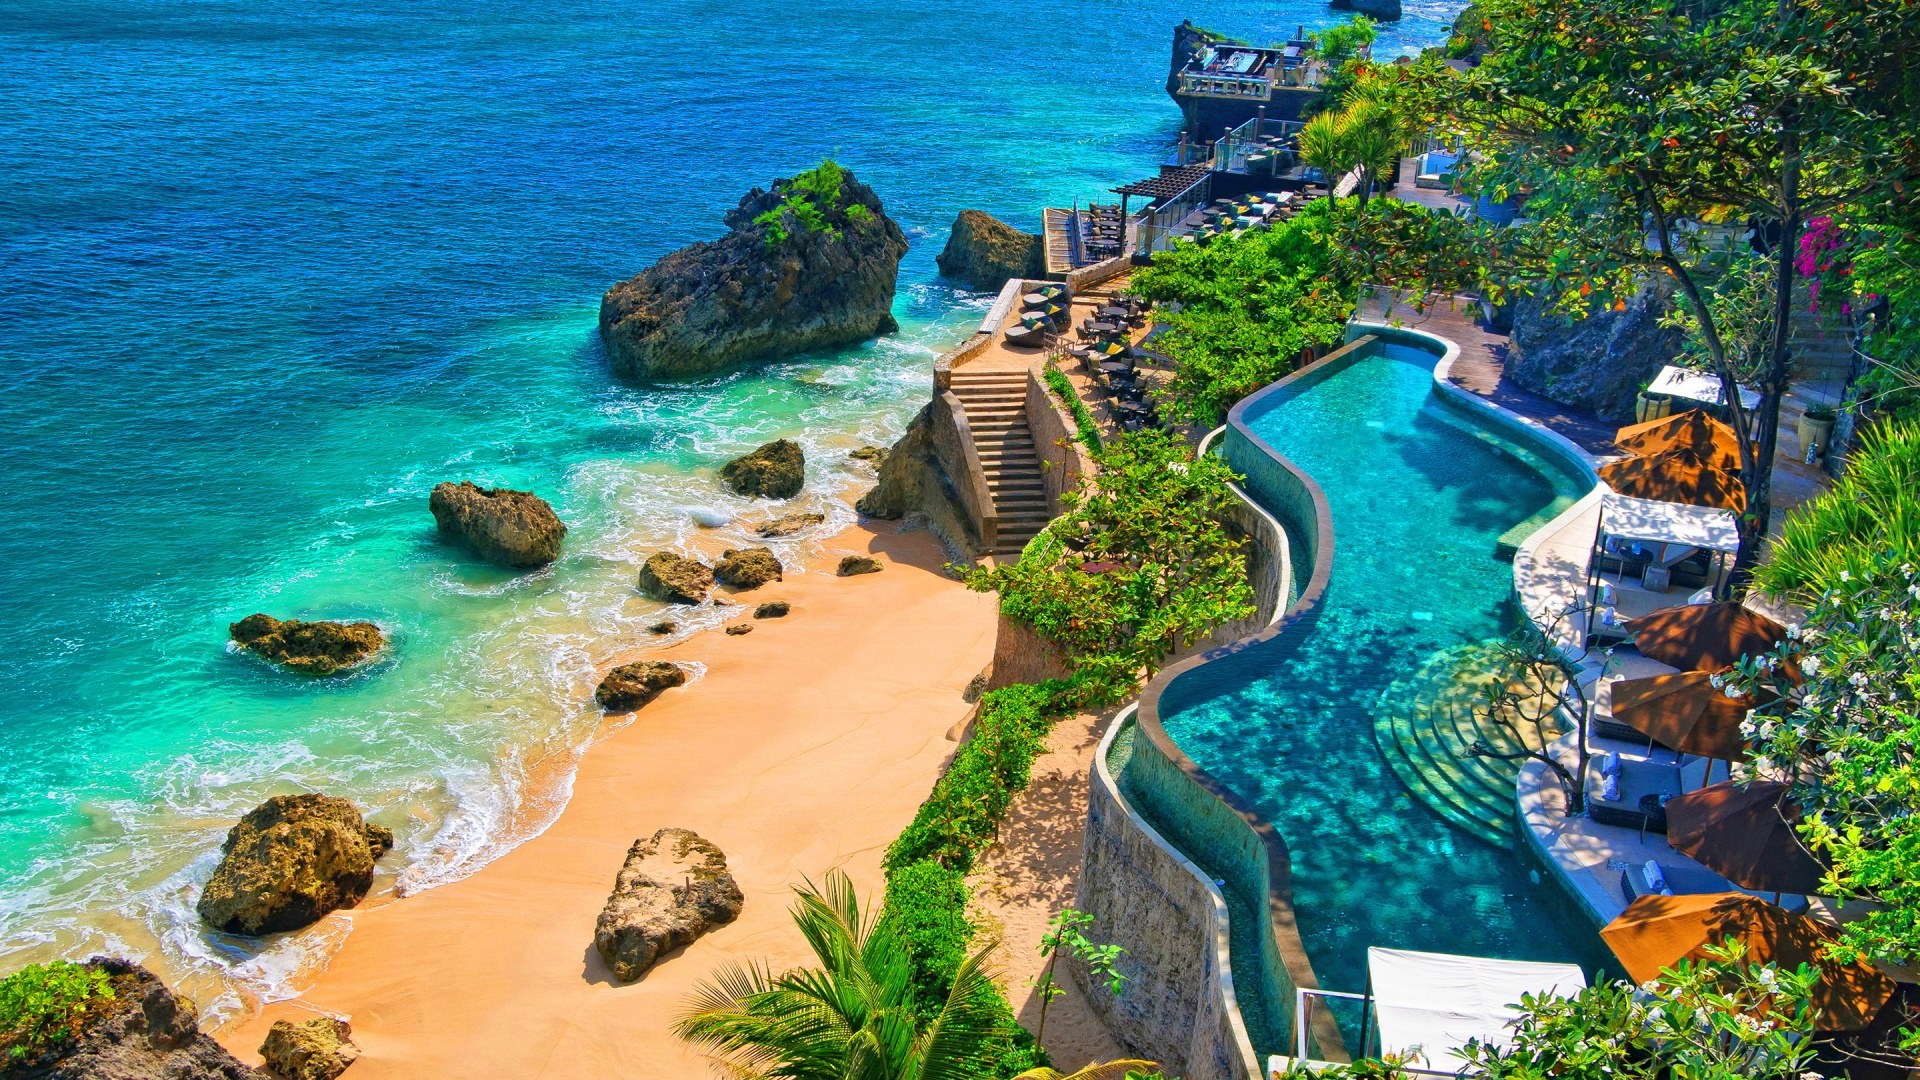 Staying in Bali and Exploring the Bali Indonesian island ...